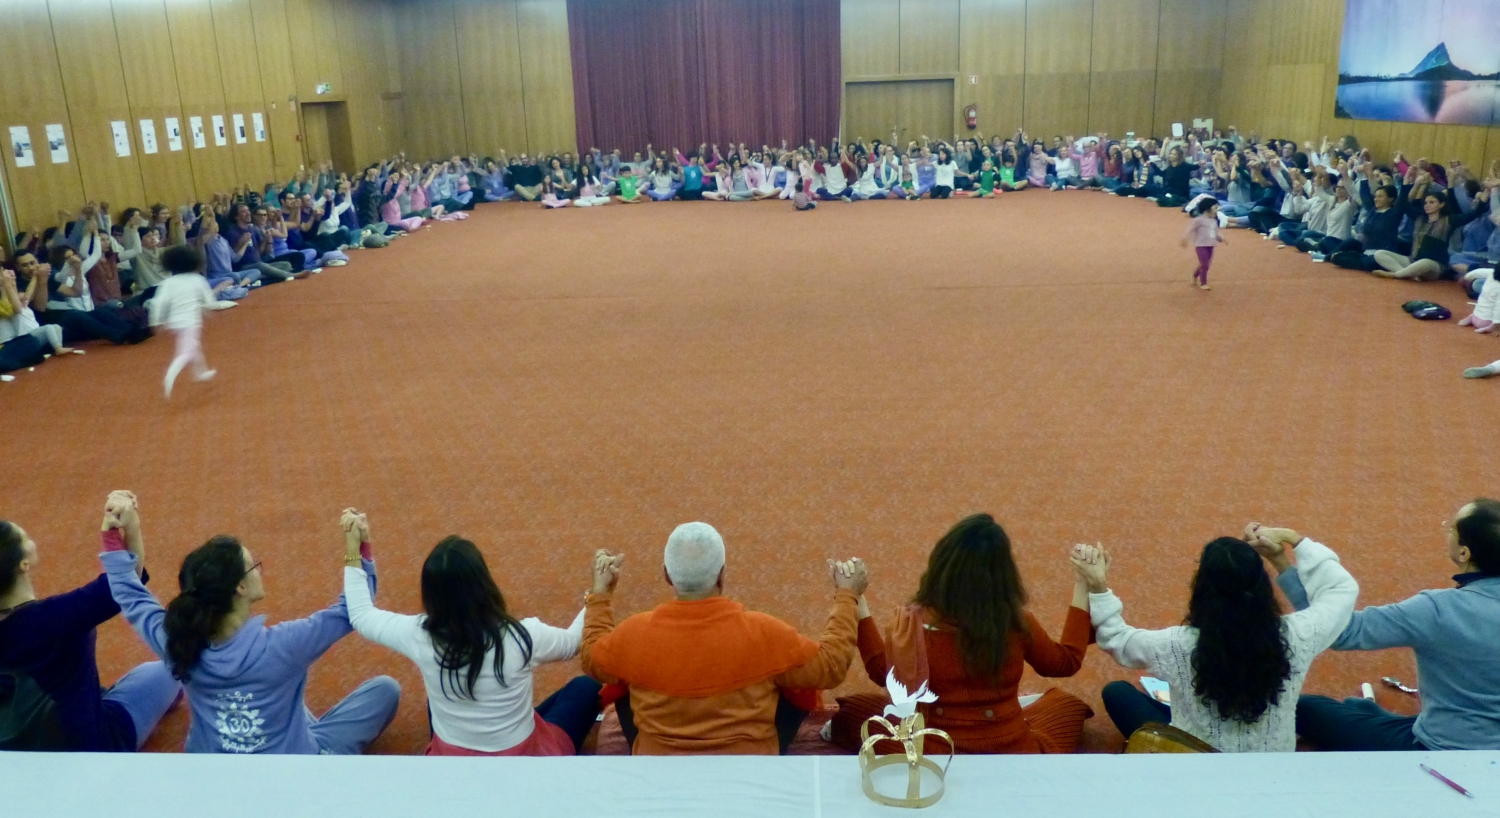 The Closing of the National Convention of Yoga - 2018